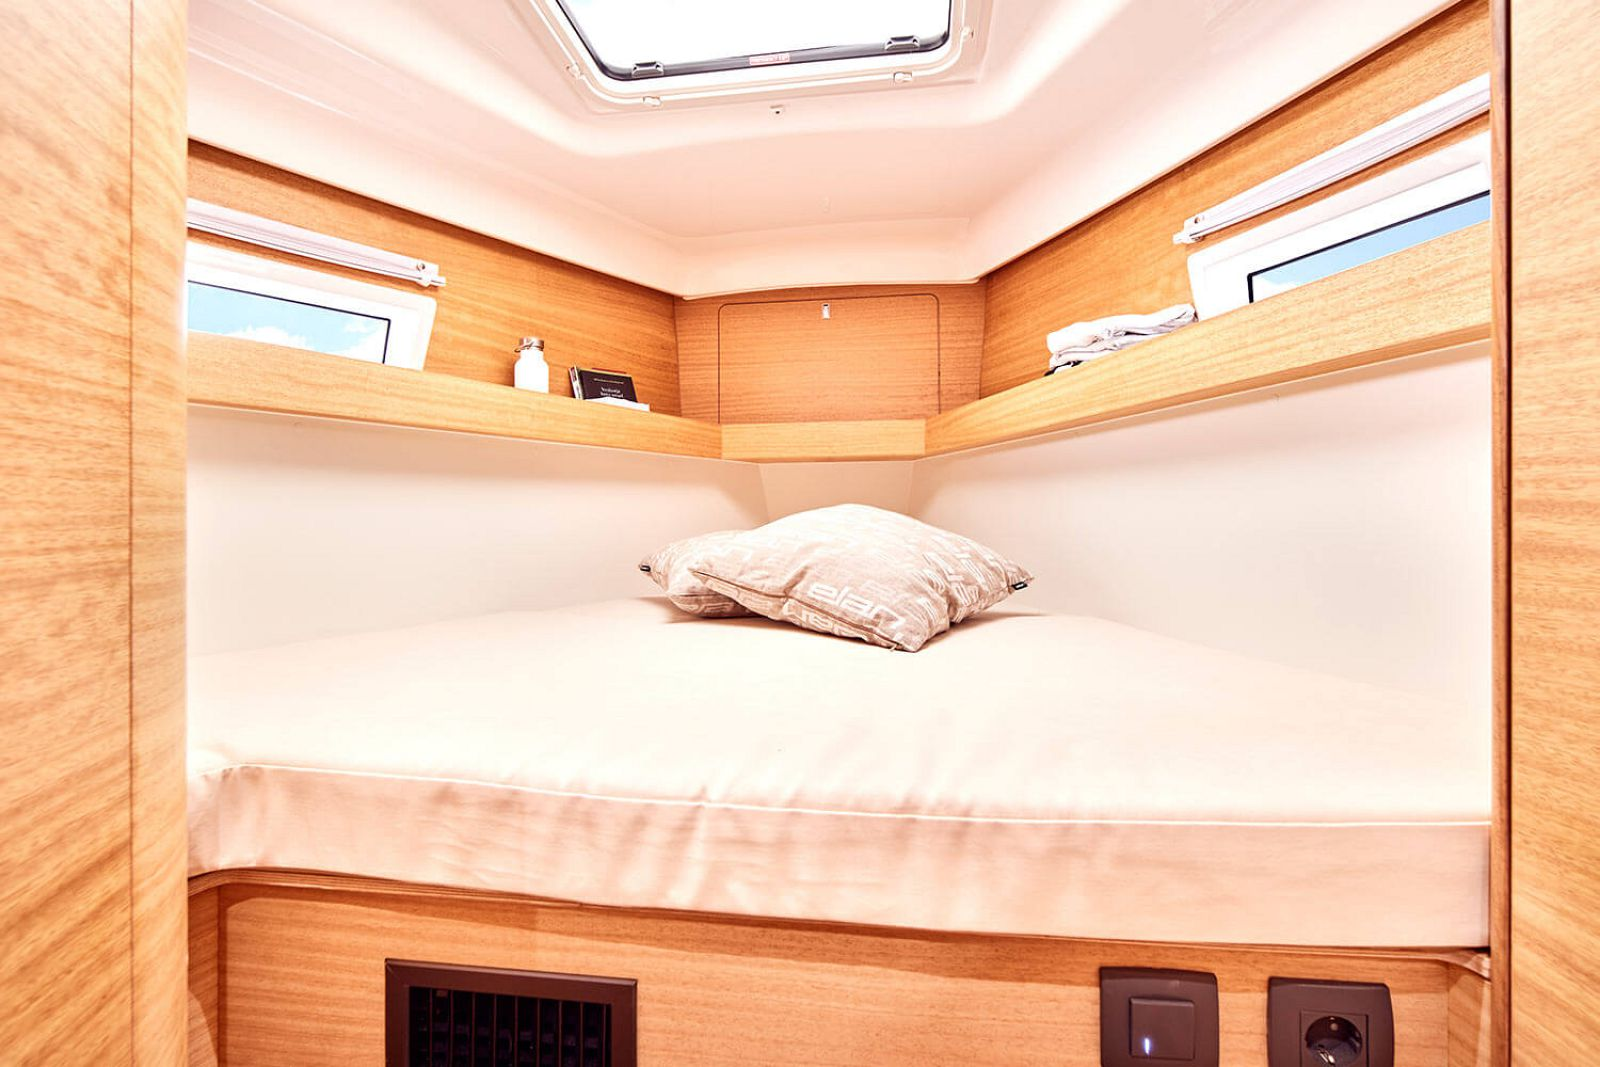 bedroom on the elan yachts impression 45.1